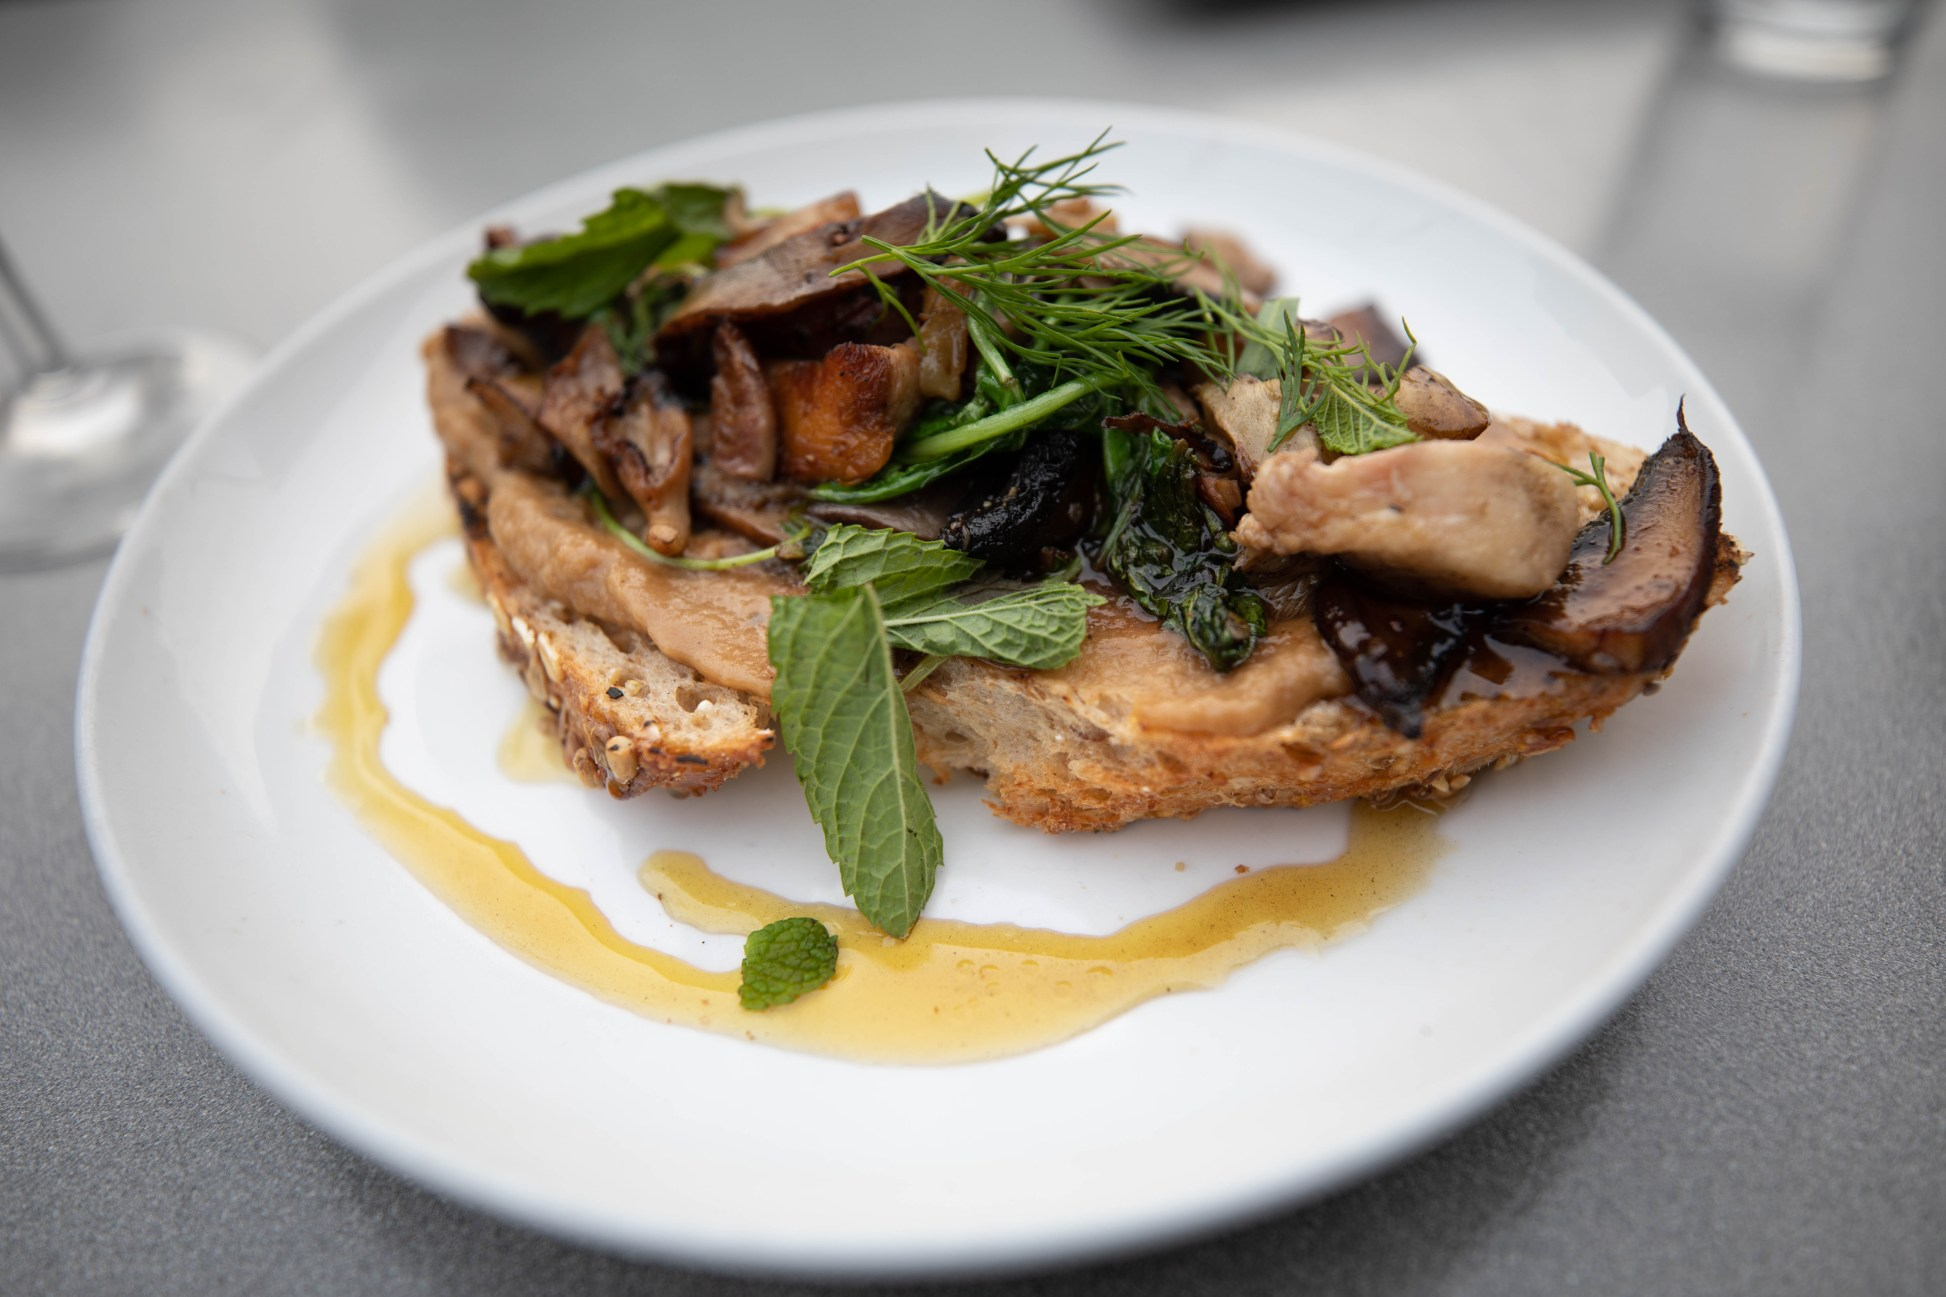 Gluten Free Mushroom Bruschetta Tinker Street in Indianapolis Luxury Restaurants of the World by Annie Fairfax